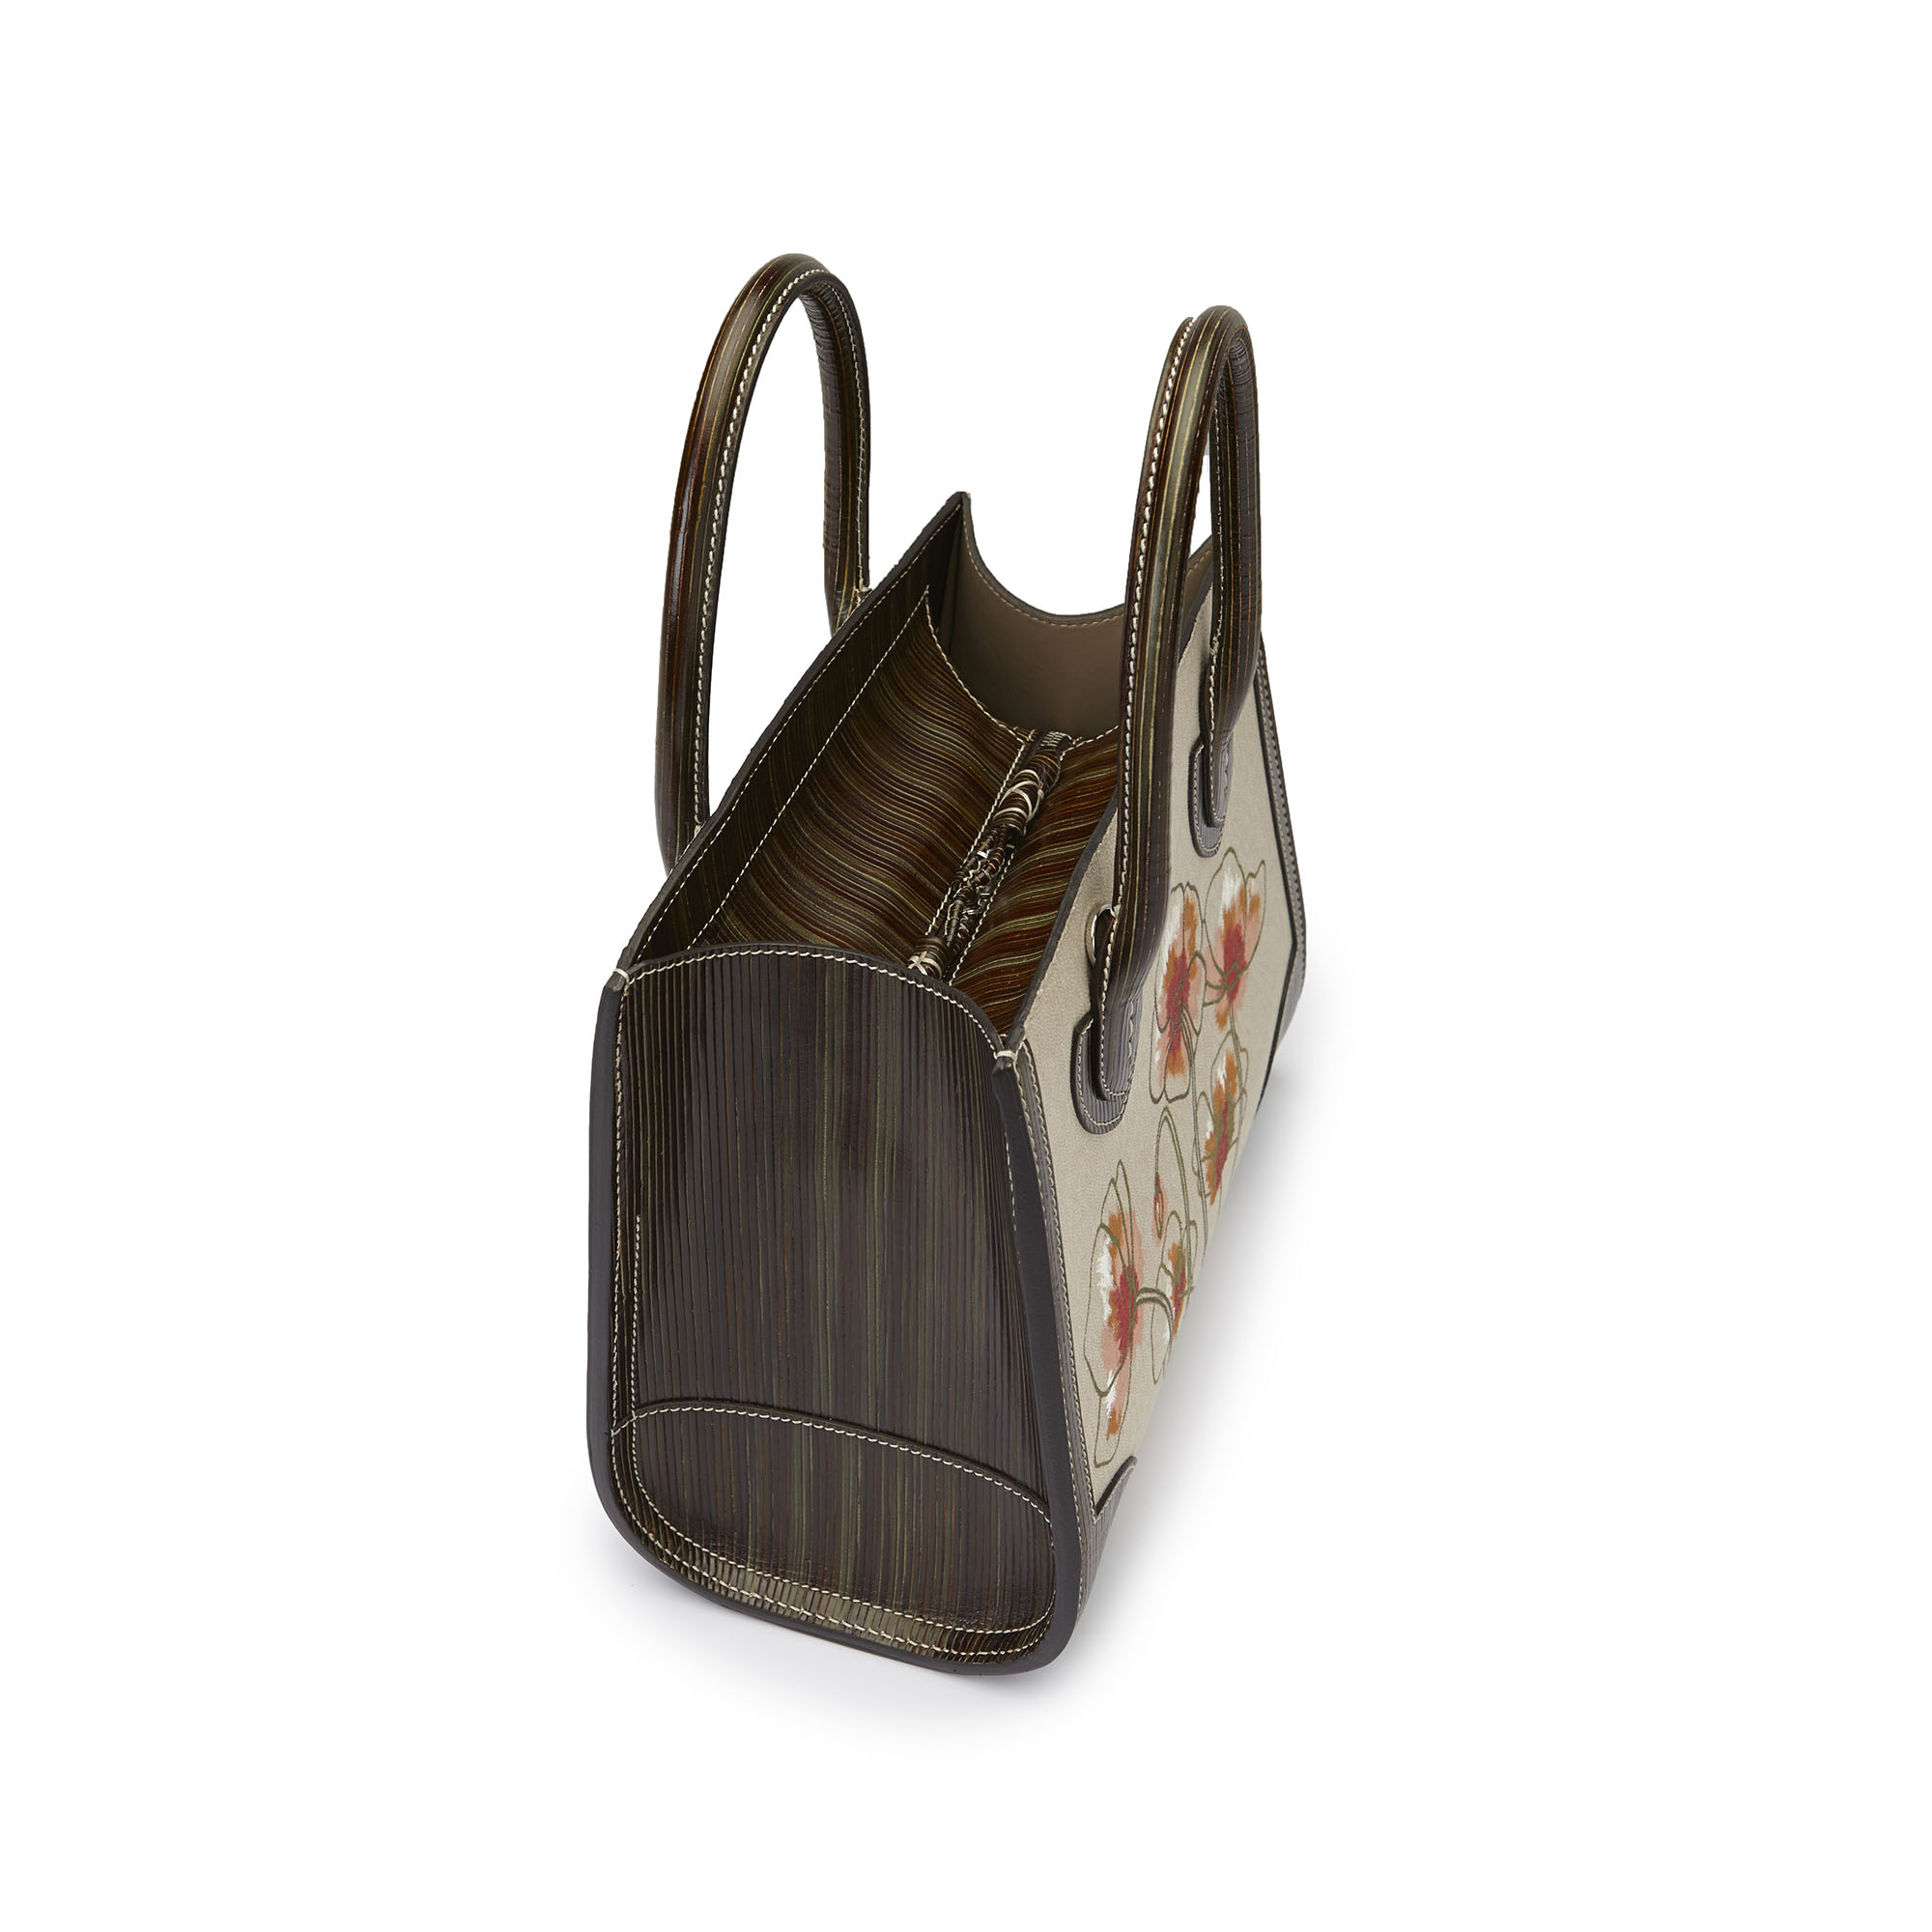 The military green with hand painted poppy flowers wood leather canvas Darcy bag by Bertoni 1949 04